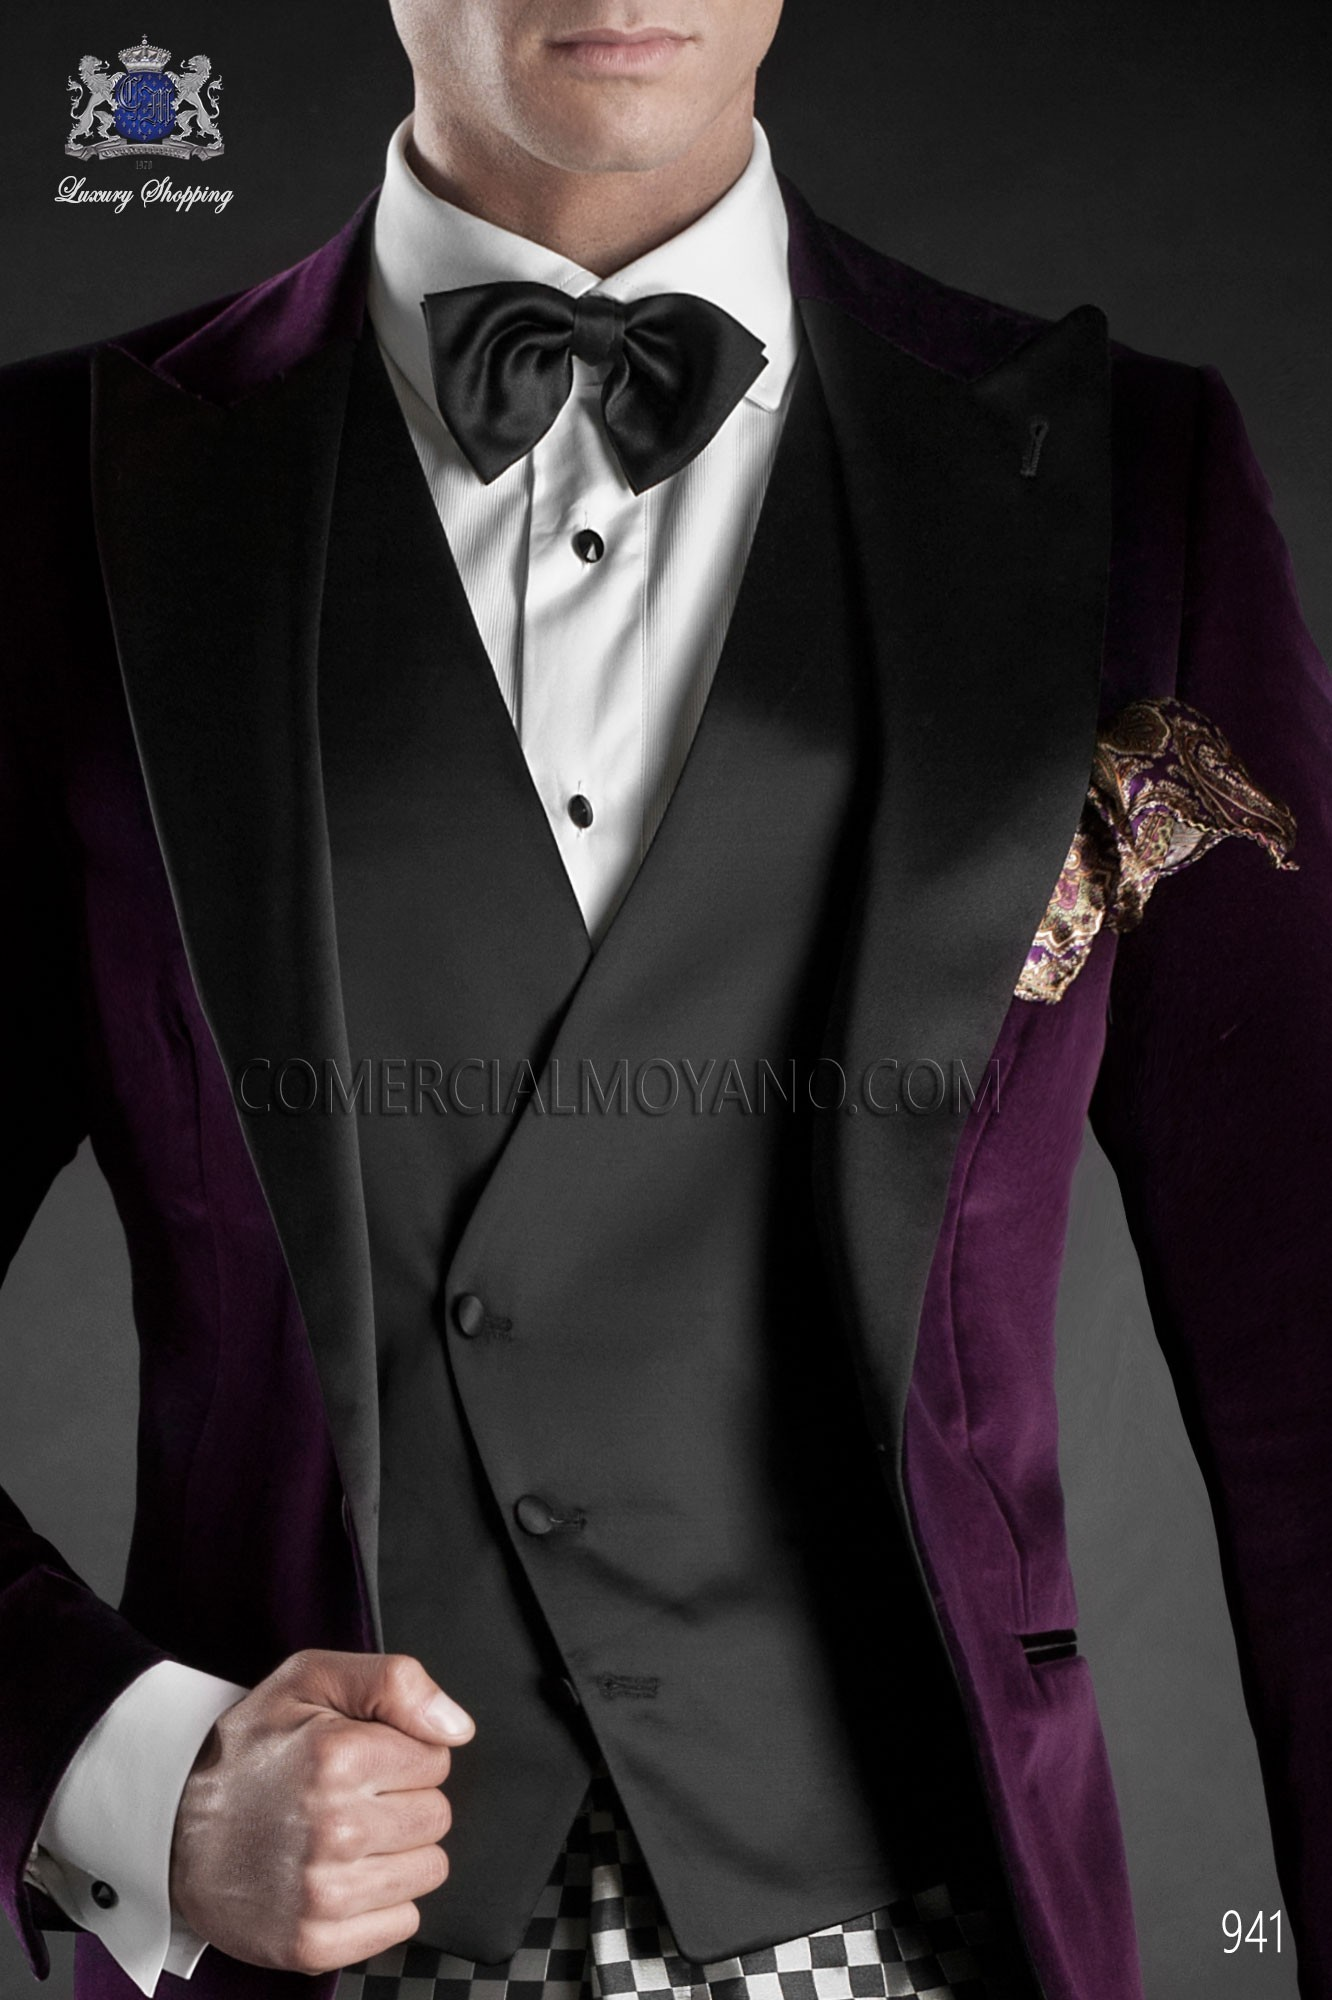 Black Tie purple men wedding suit, model: 941 Ottavio Nuccio Gala